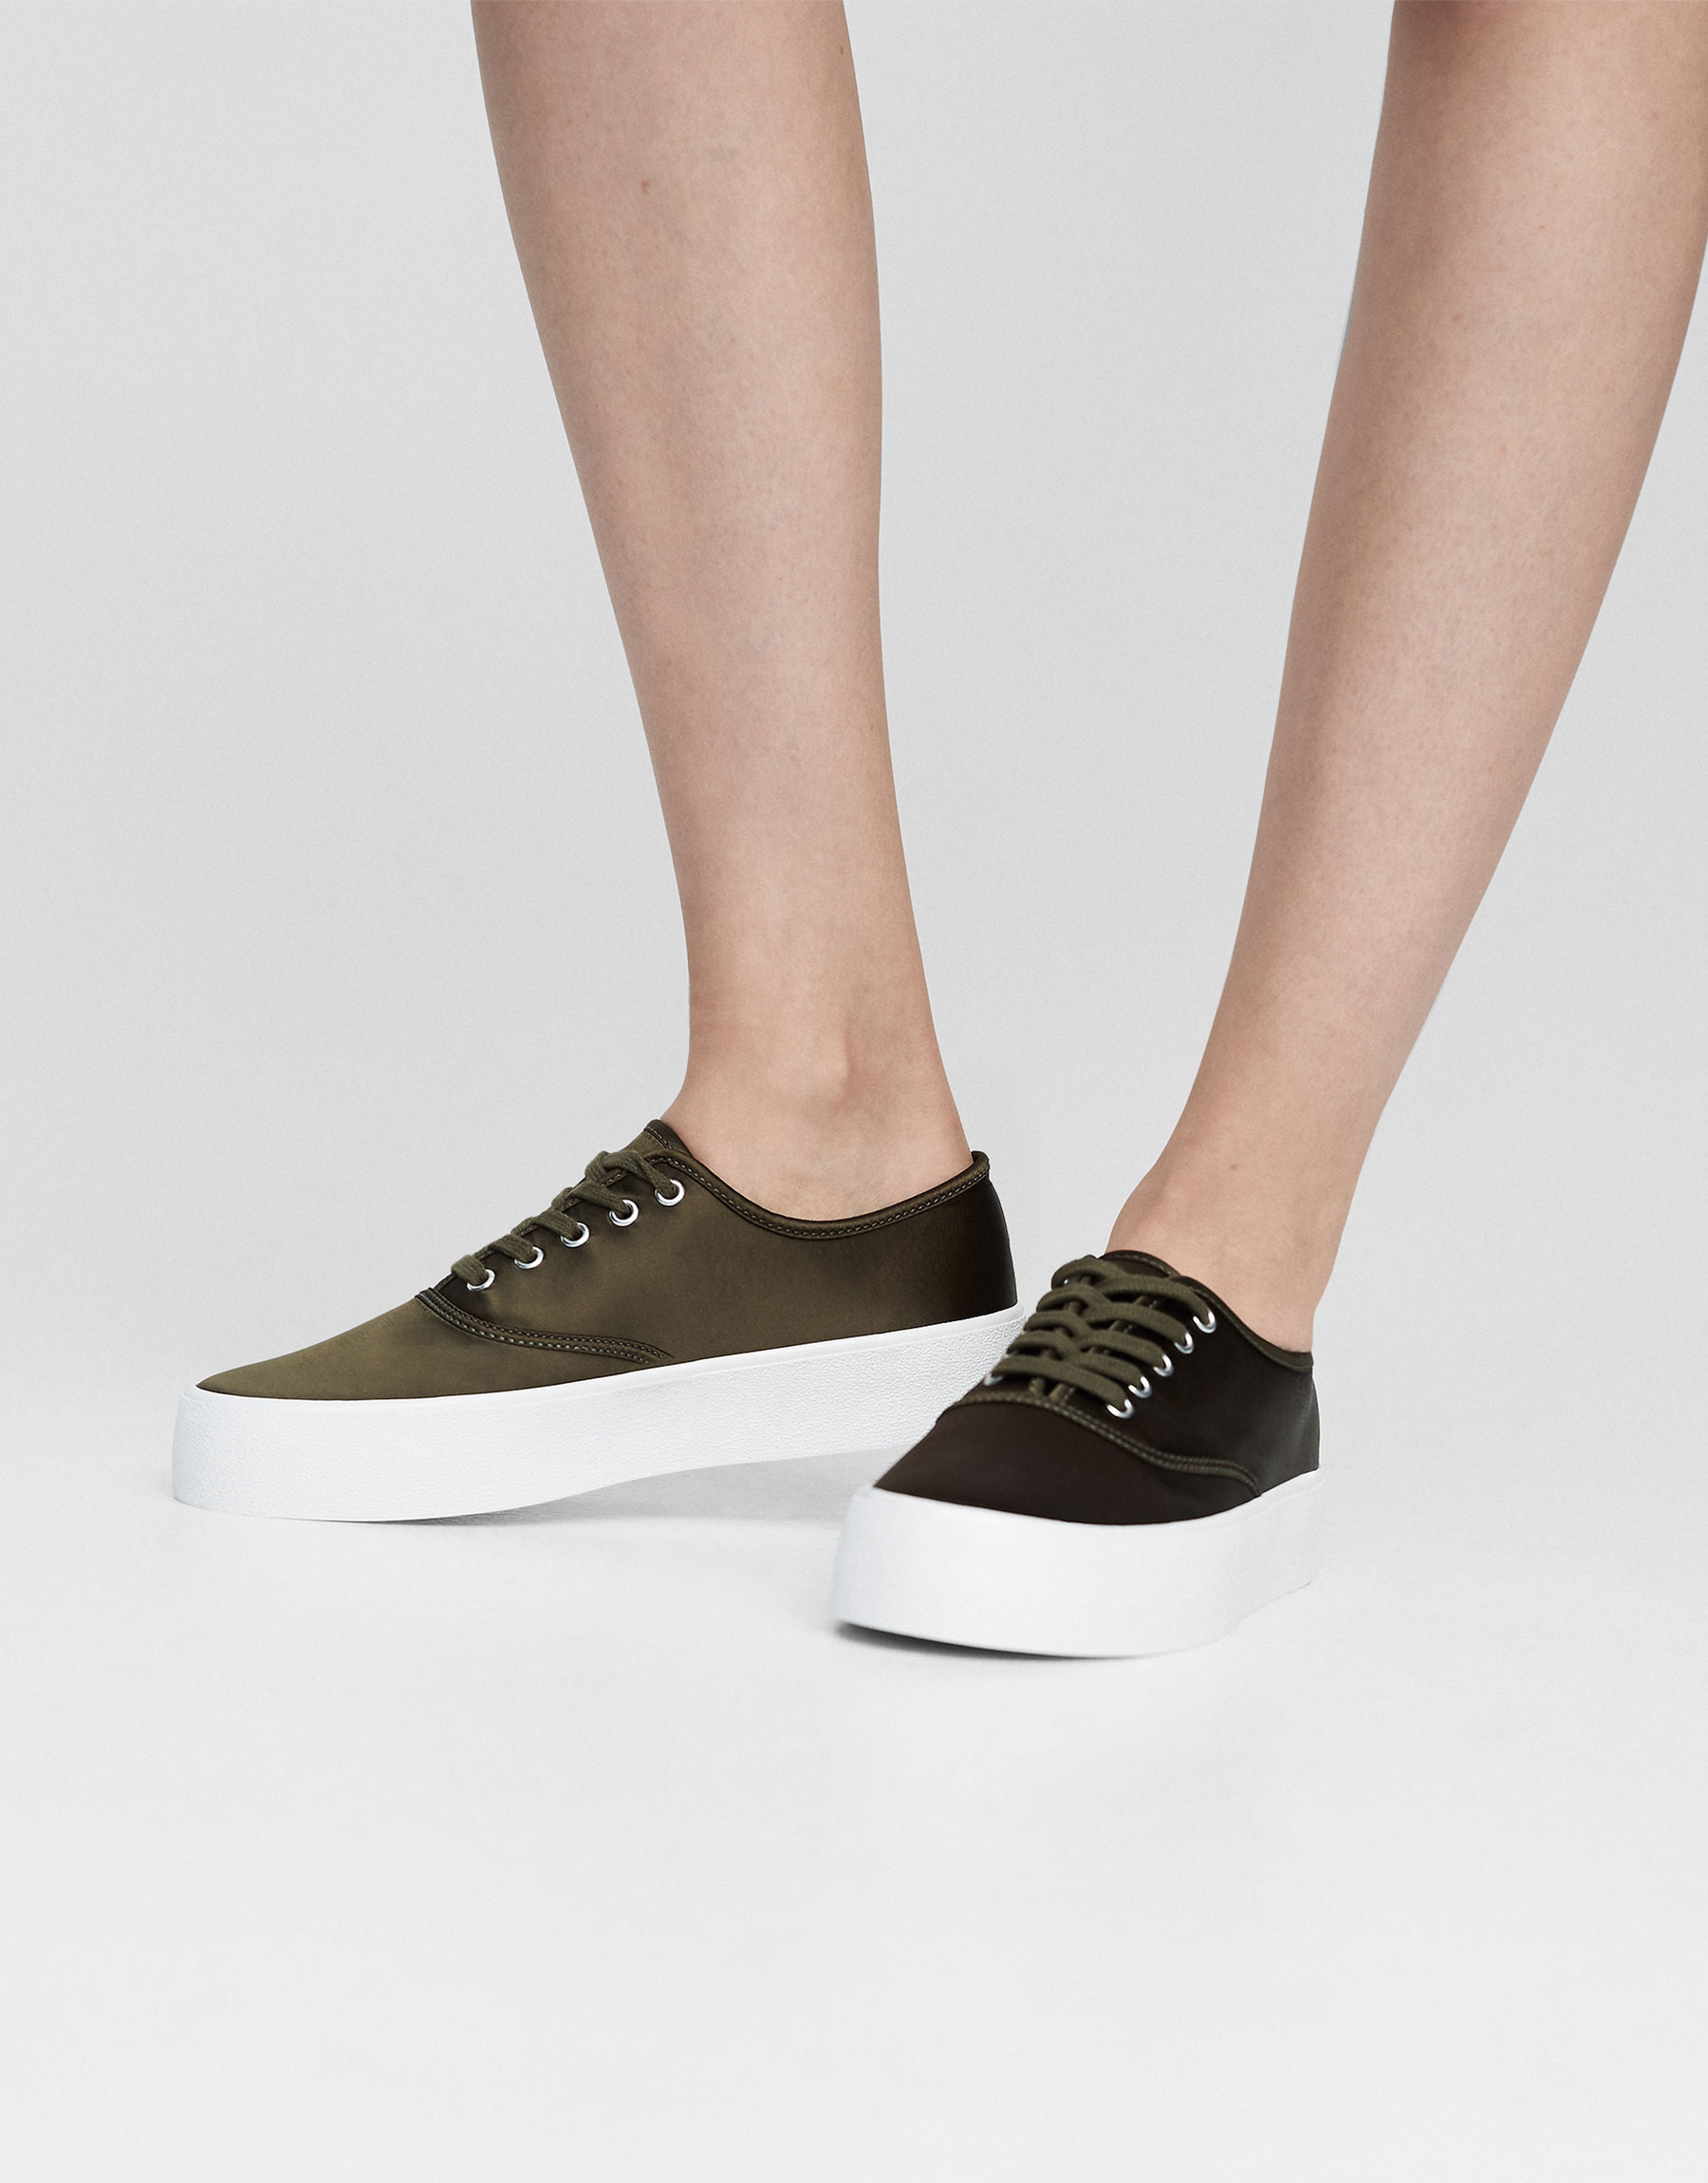 Khaki satin sneakers